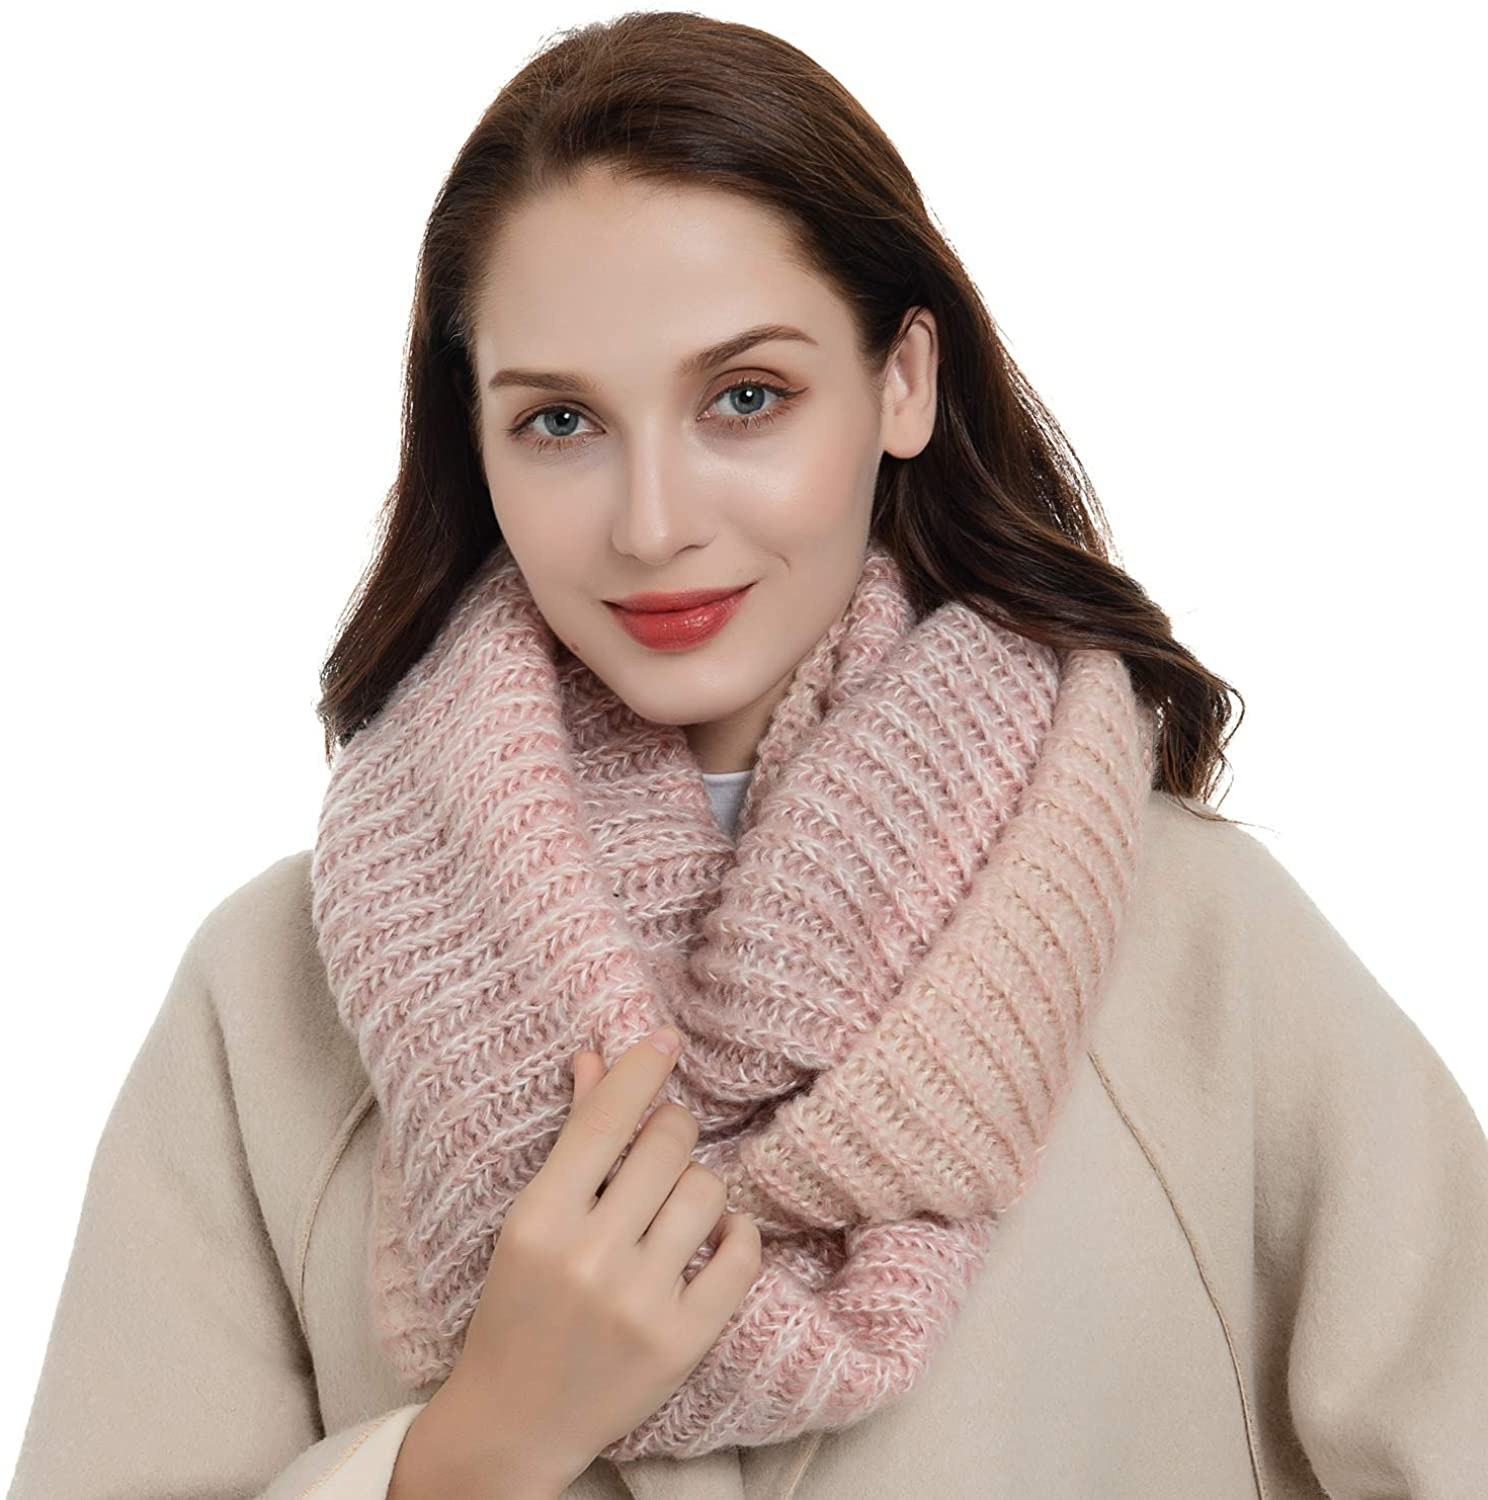 model wearing the pink scarf